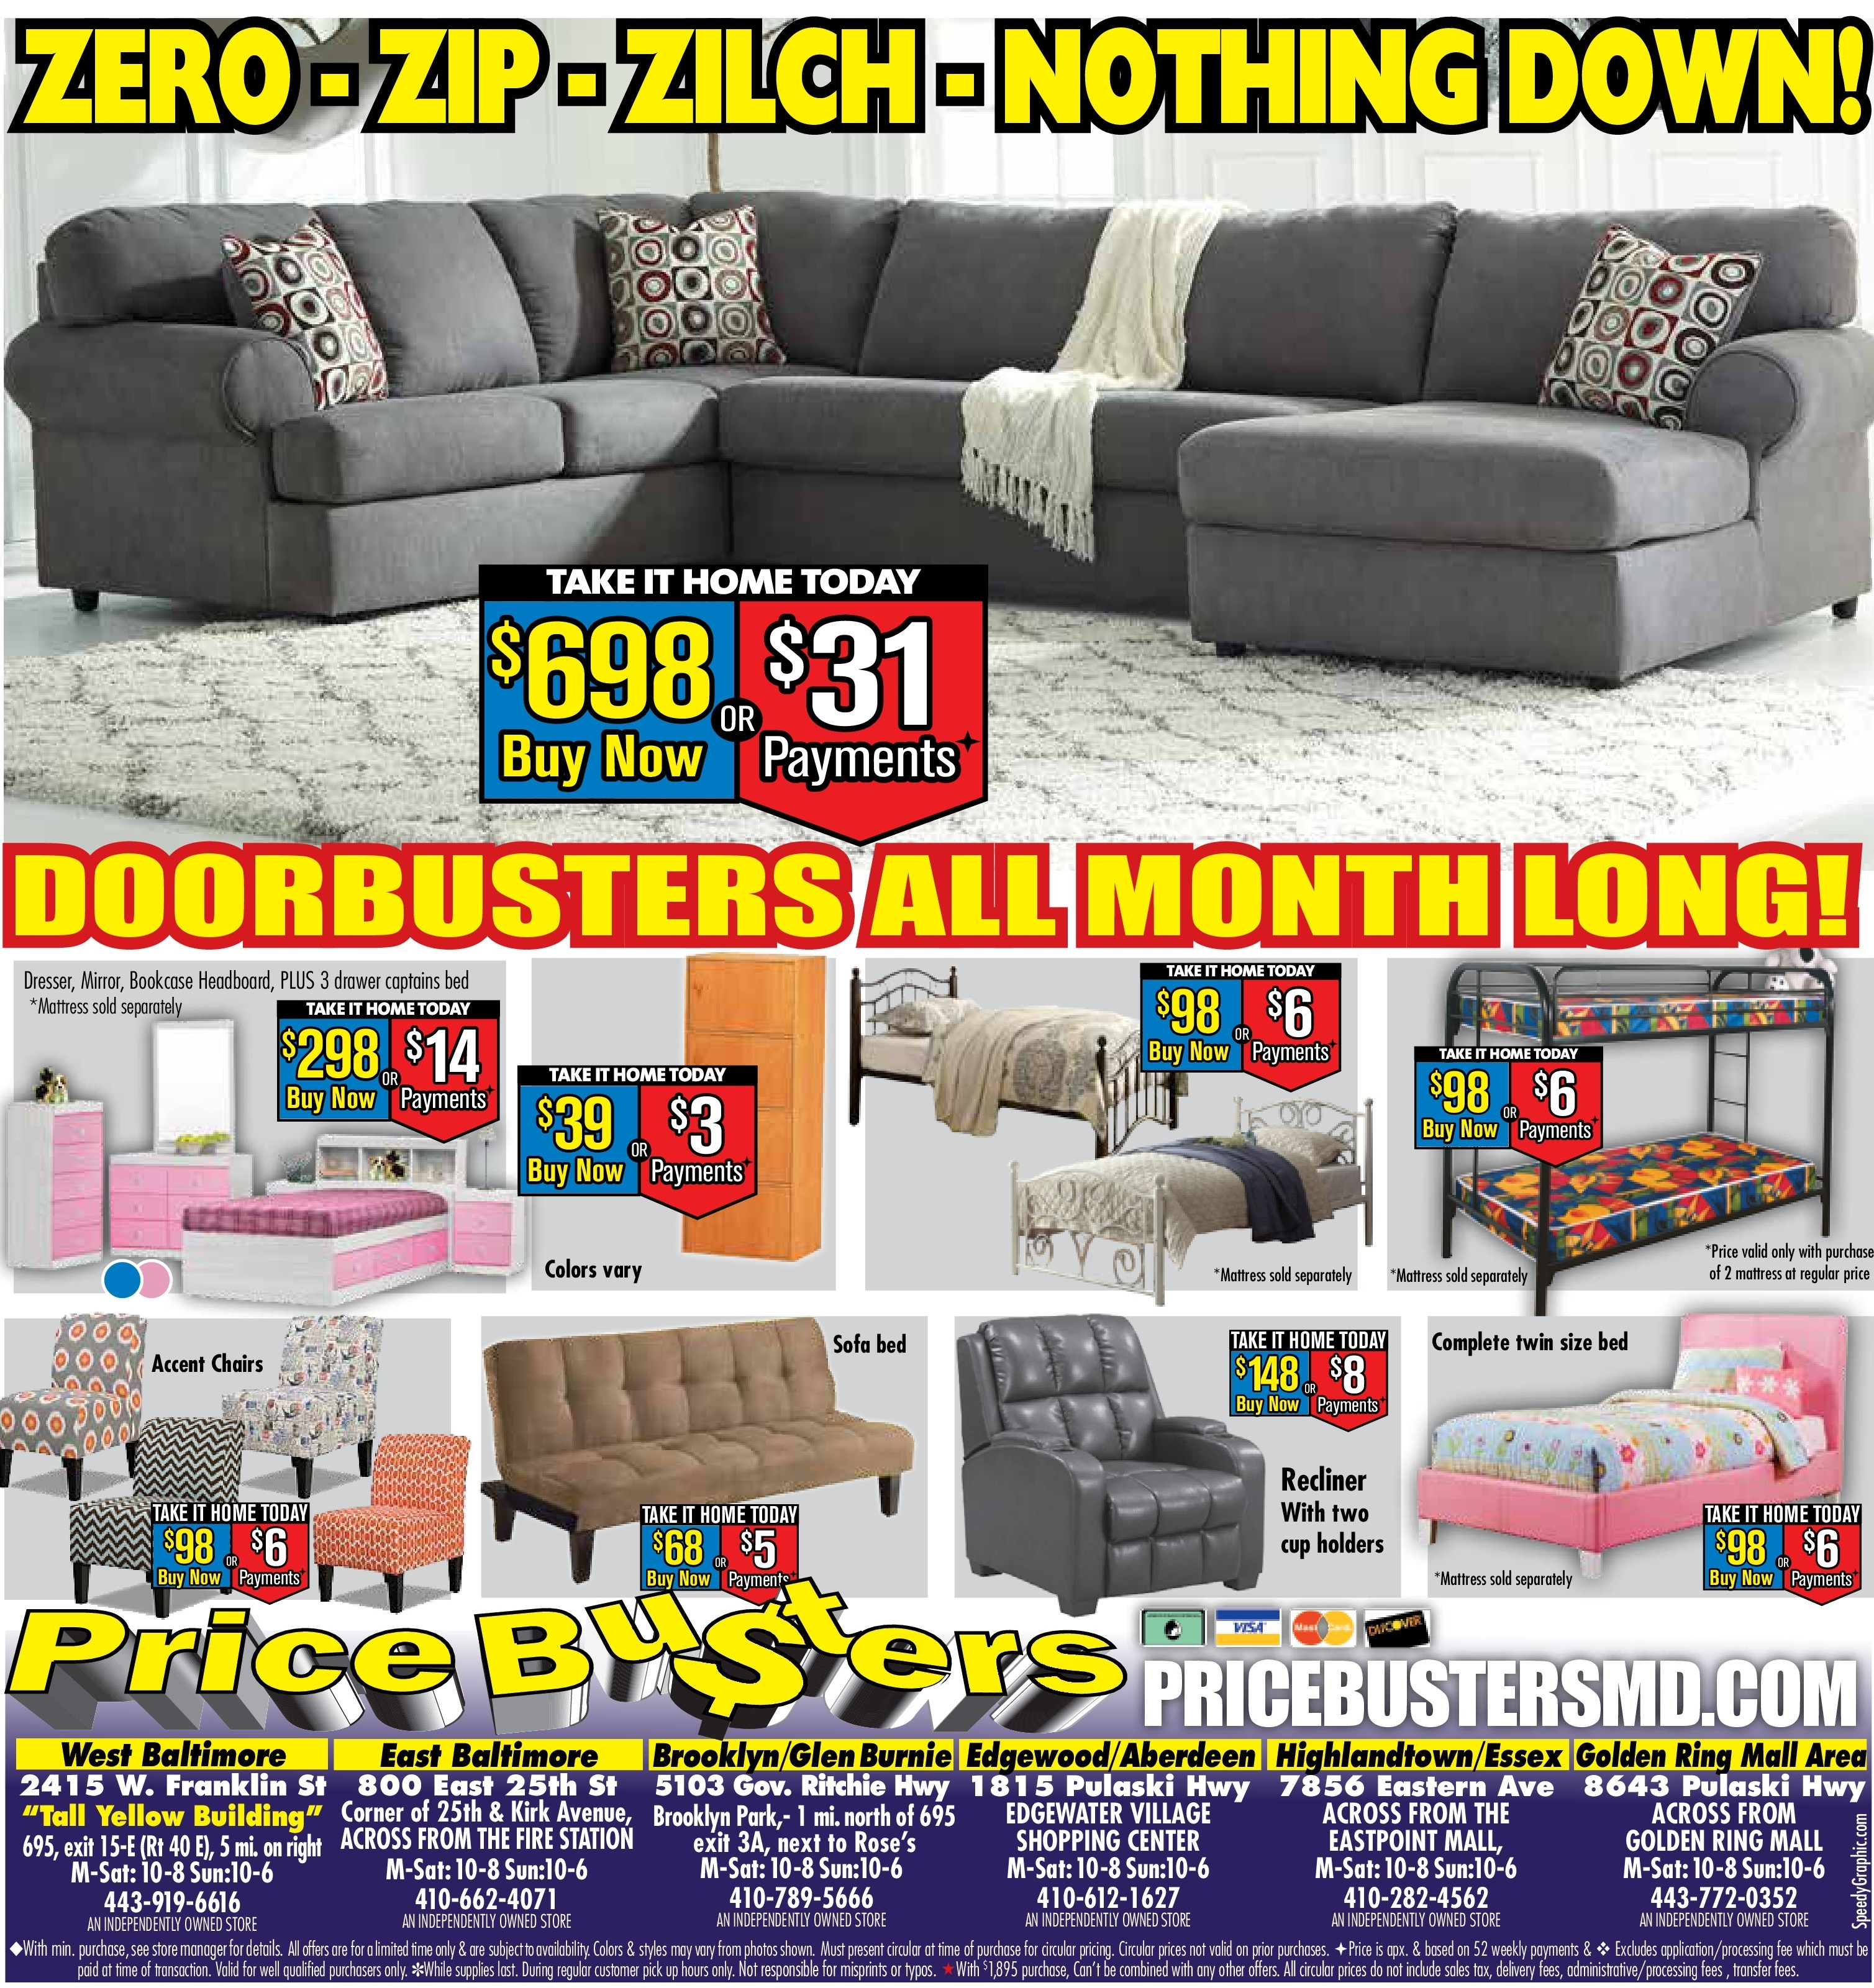 Price Busters Discount Furniture At Price Busters Discount Furniture At 800 East 25th Price